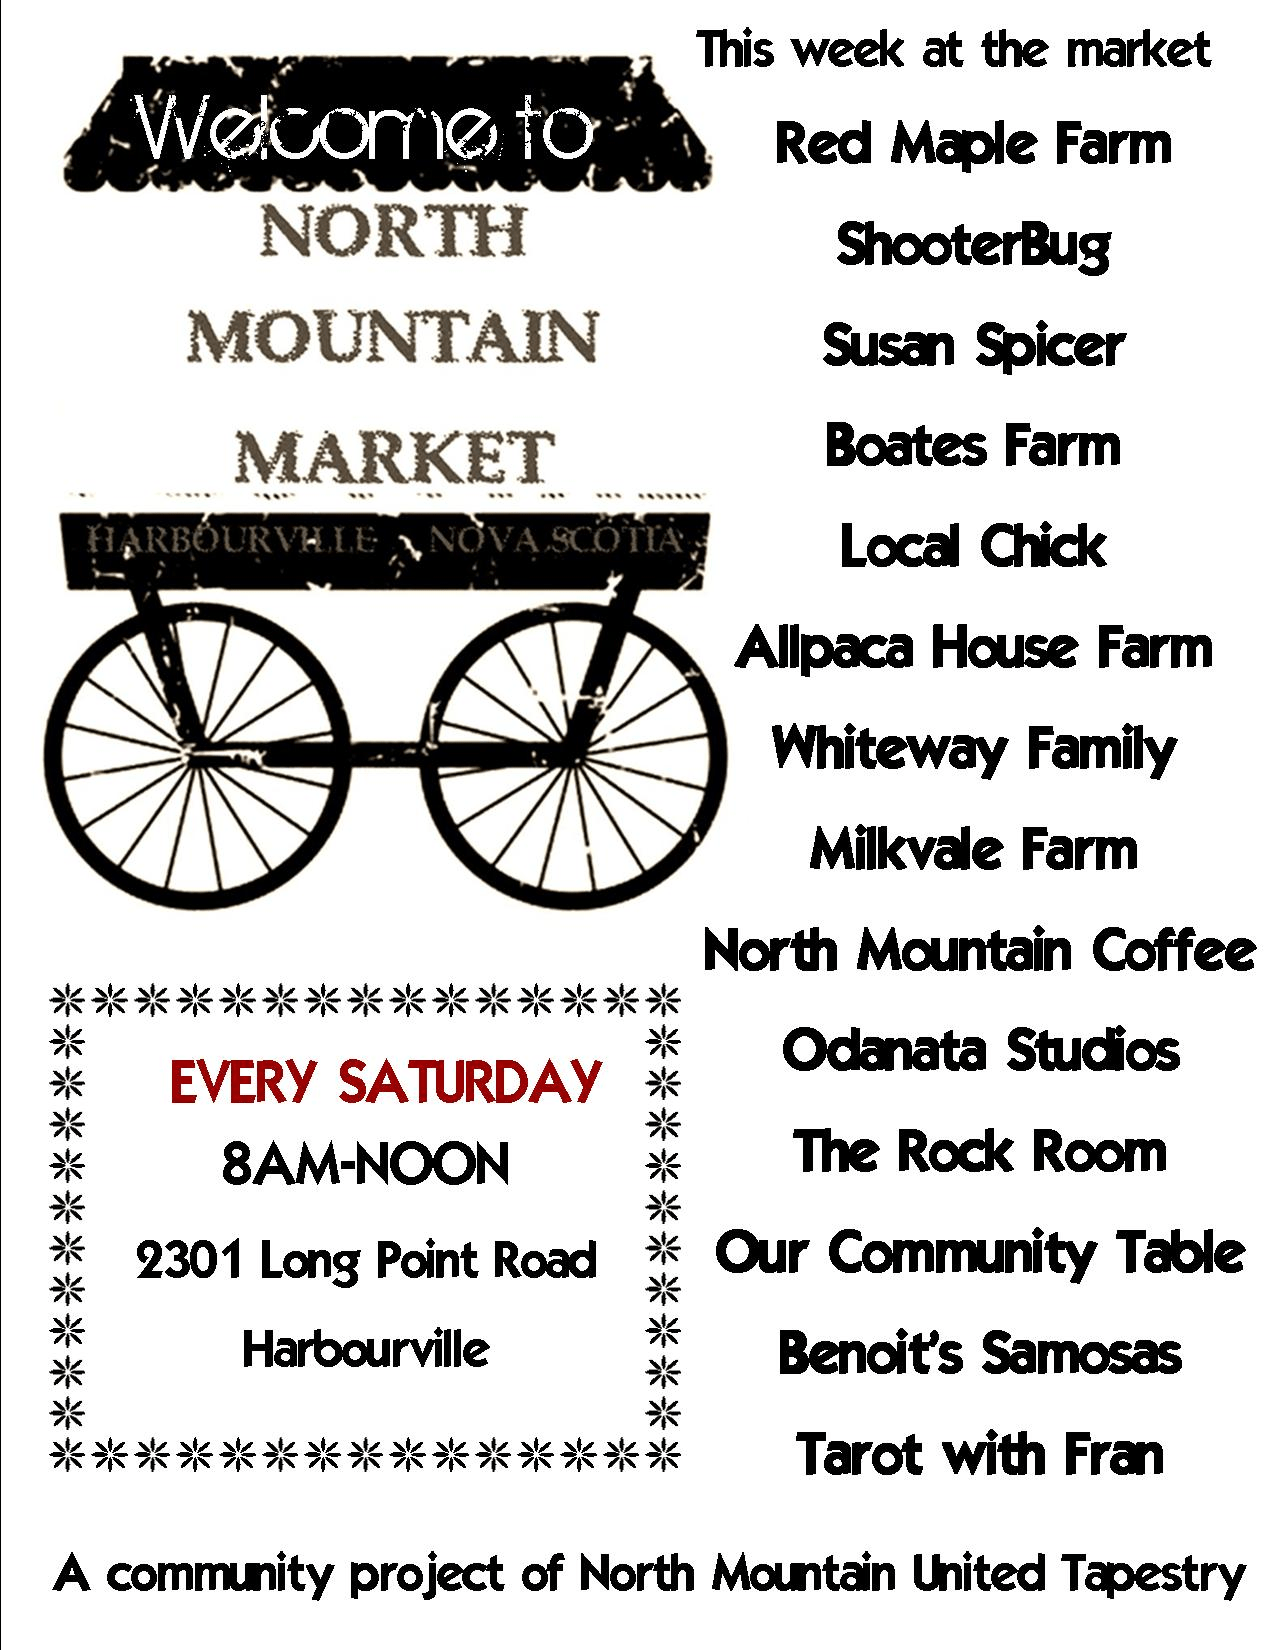 Farmer's Market at North Mountain United Tapestry